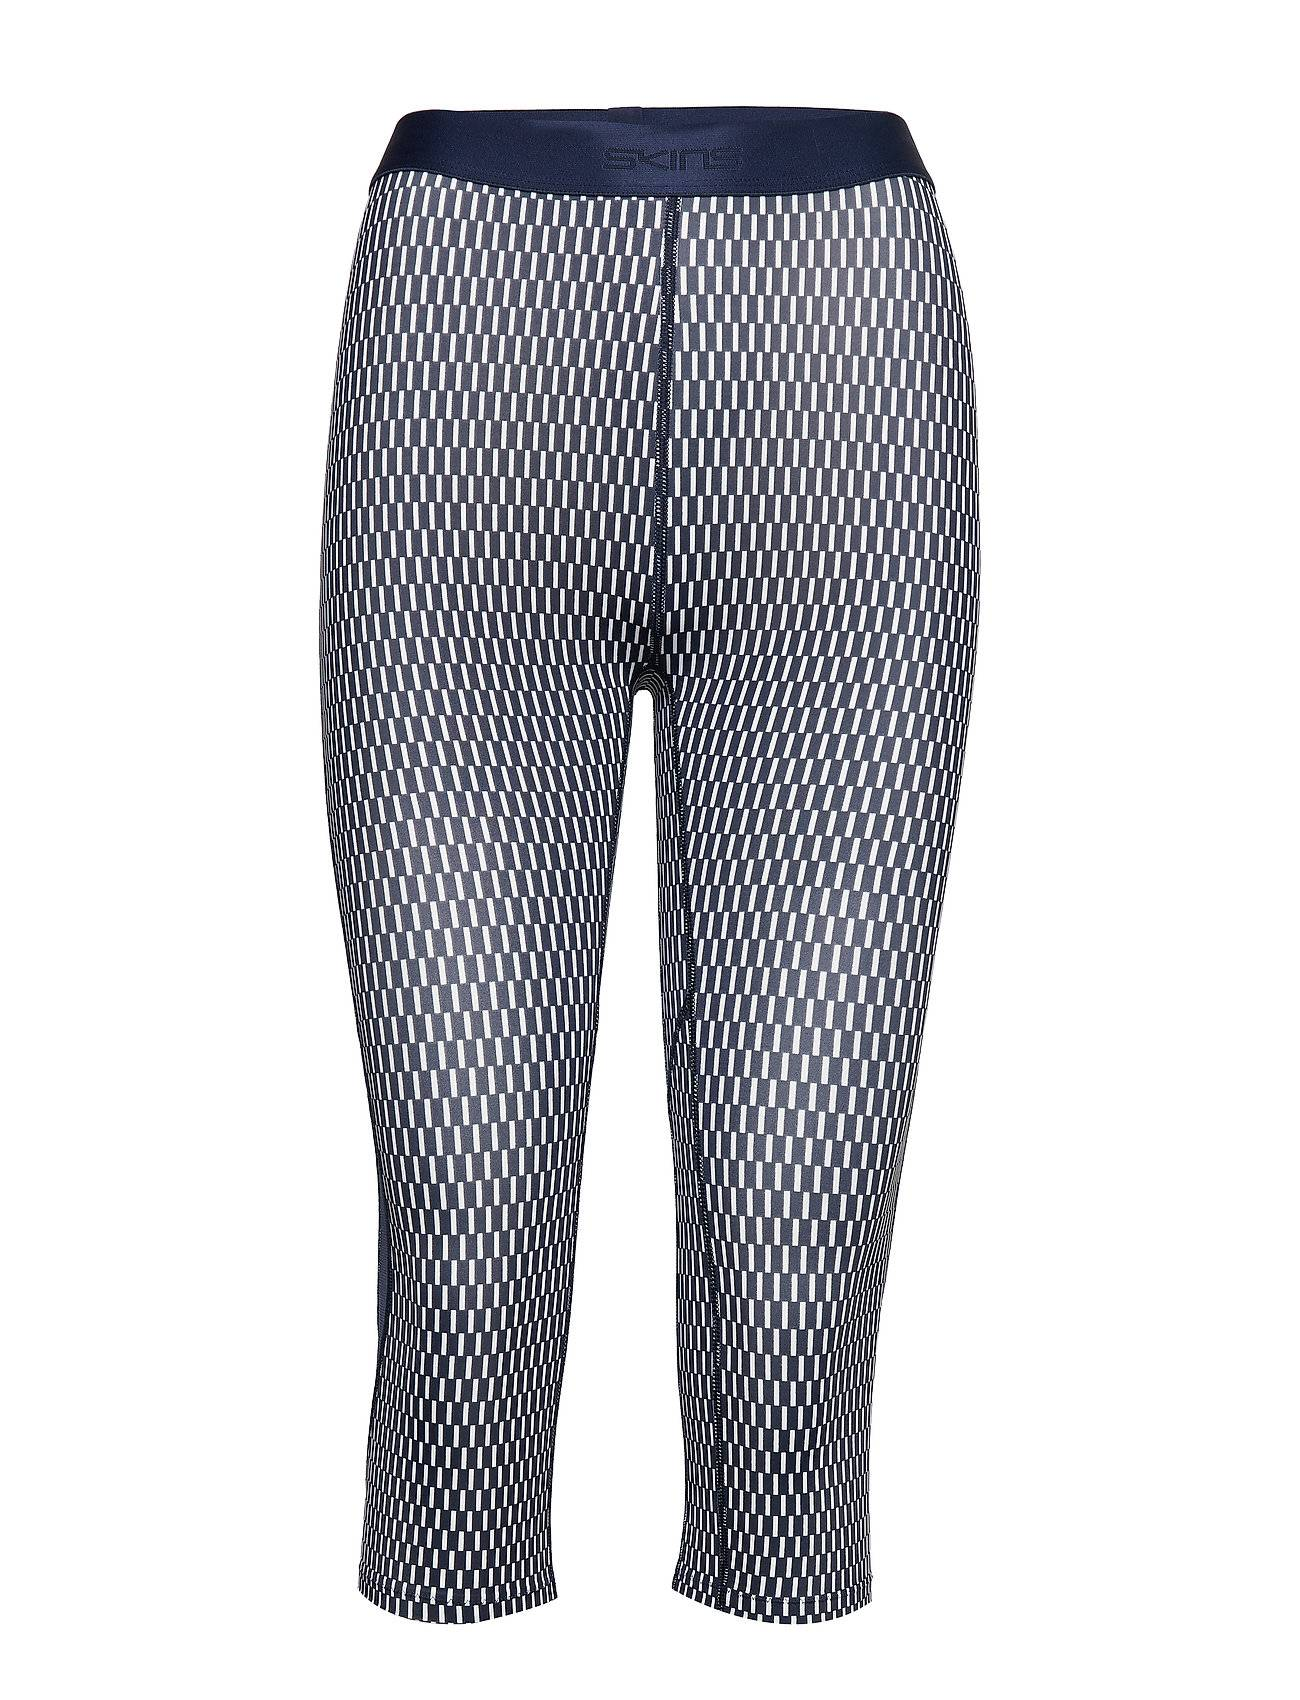 Skins Dnamic Womens Capri Tights Running/training Tights Sininen Skins